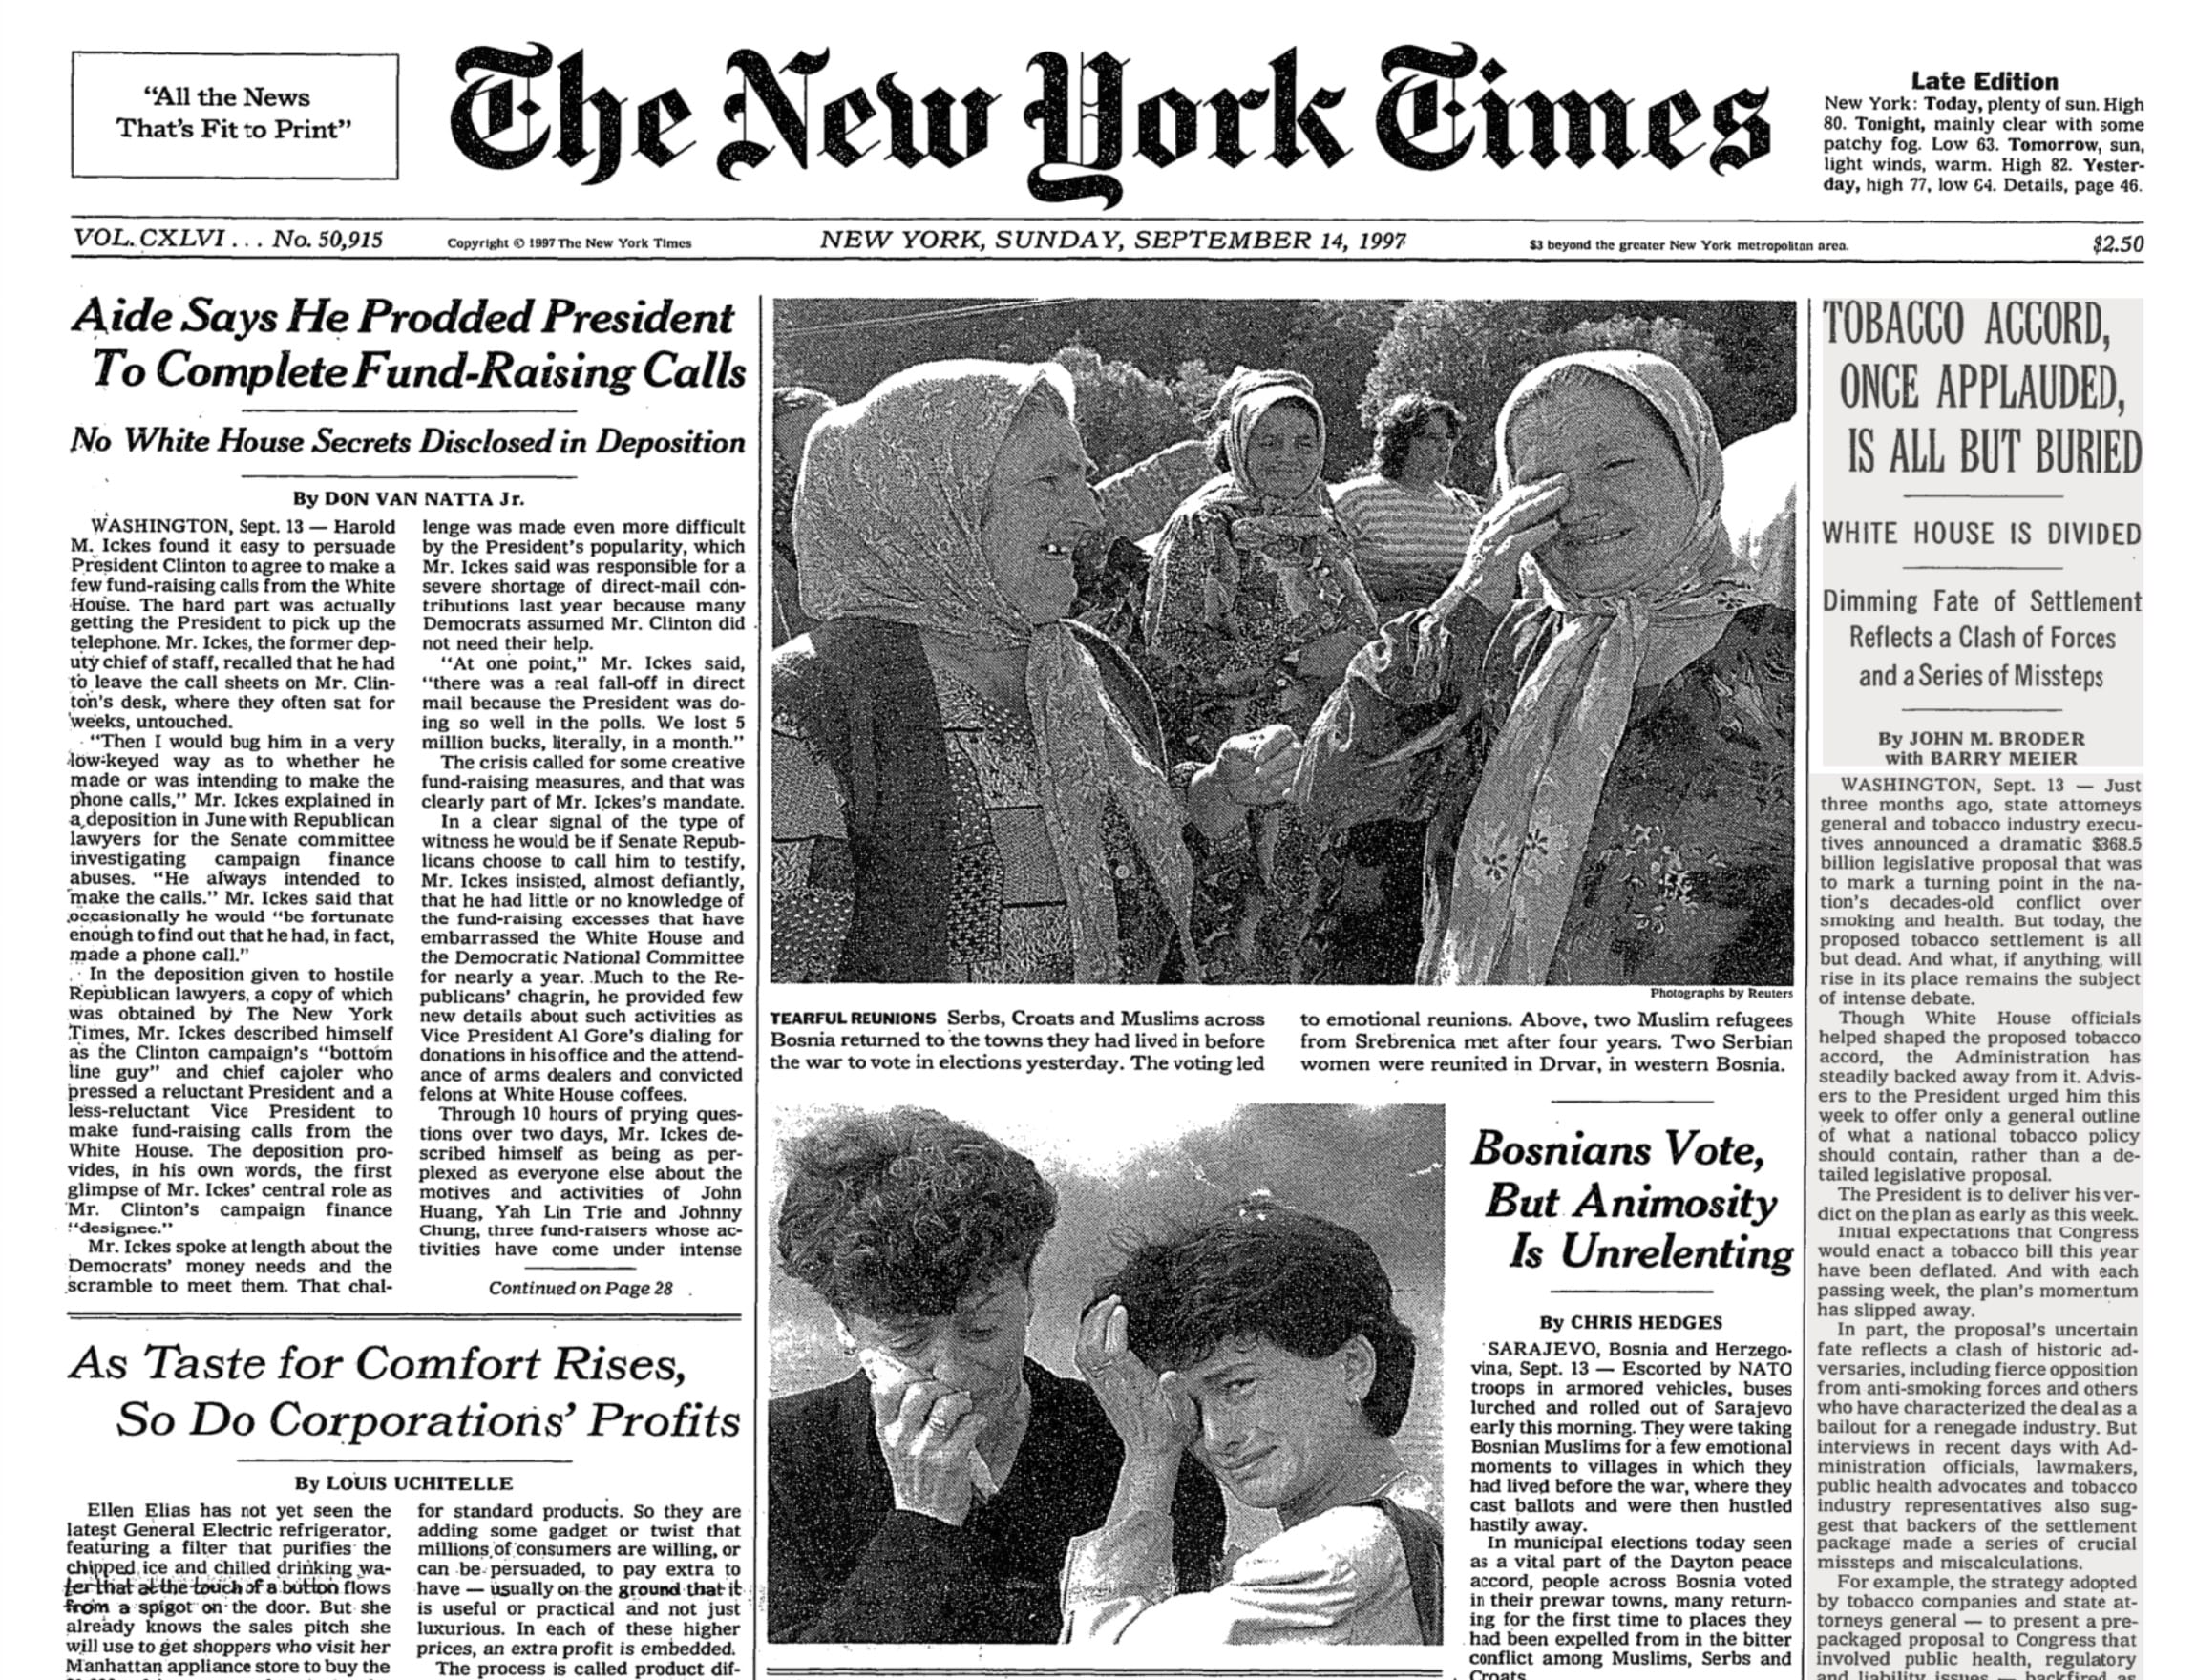 Image NY Times Bosnian War election